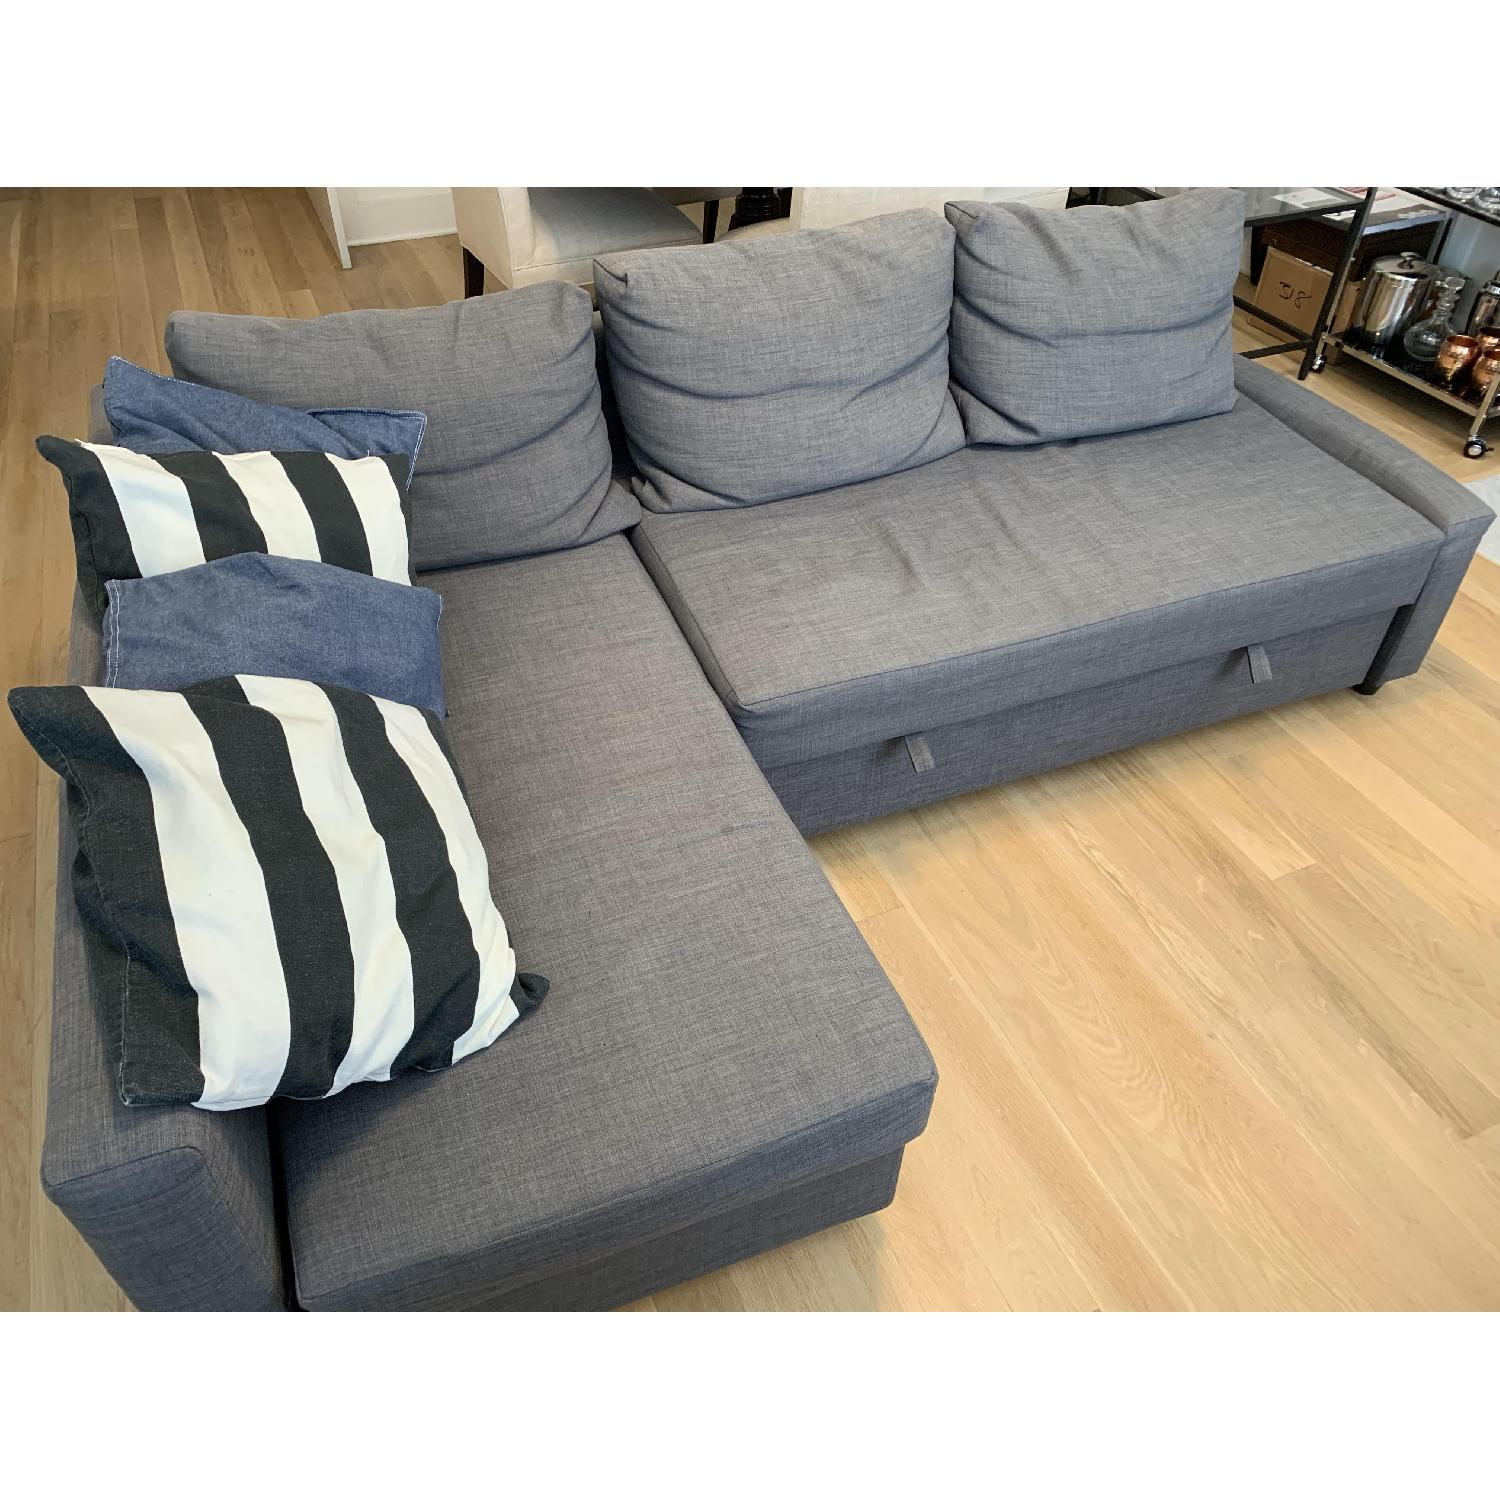 Peachy Ikea Friheten Sleeper Sectional Sofa W Storage In Dark Gray Machost Co Dining Chair Design Ideas Machostcouk